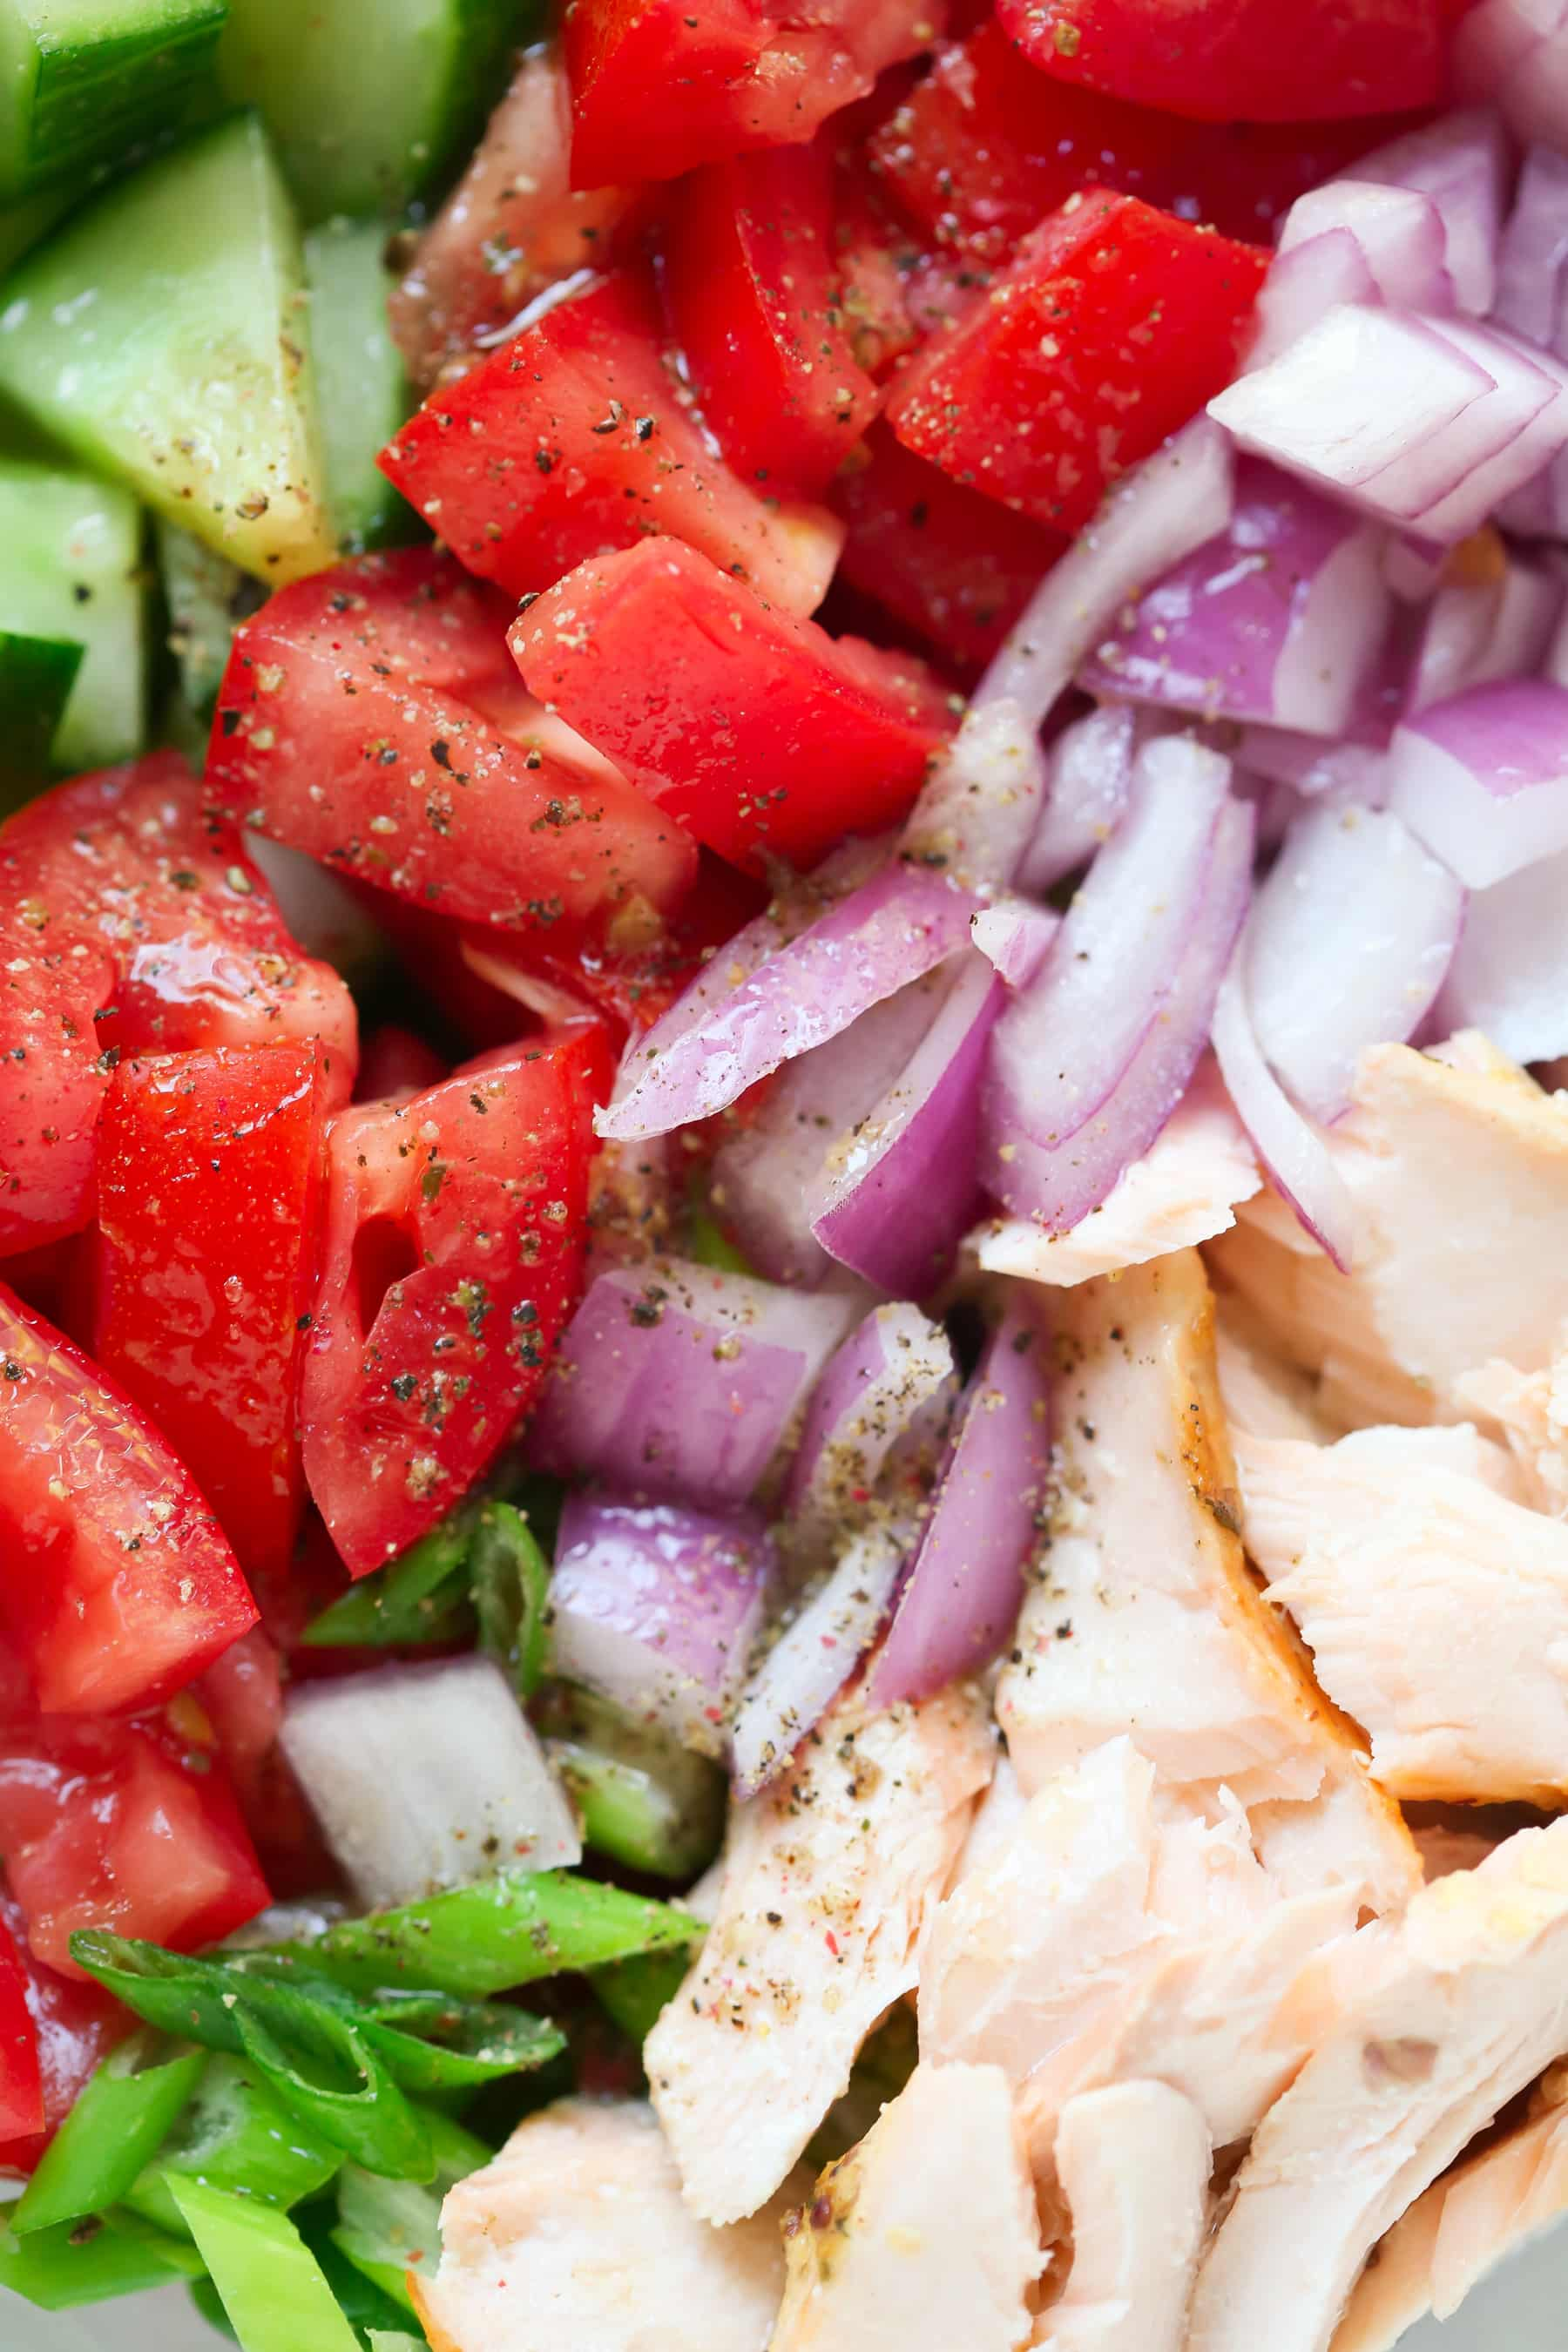 Salmon Chopped Salad recipe - Salmon Chopped Salad recipe is quick and easy to make, packed with protein, healthy fats and it's flavoured with lemon vinaigrette.